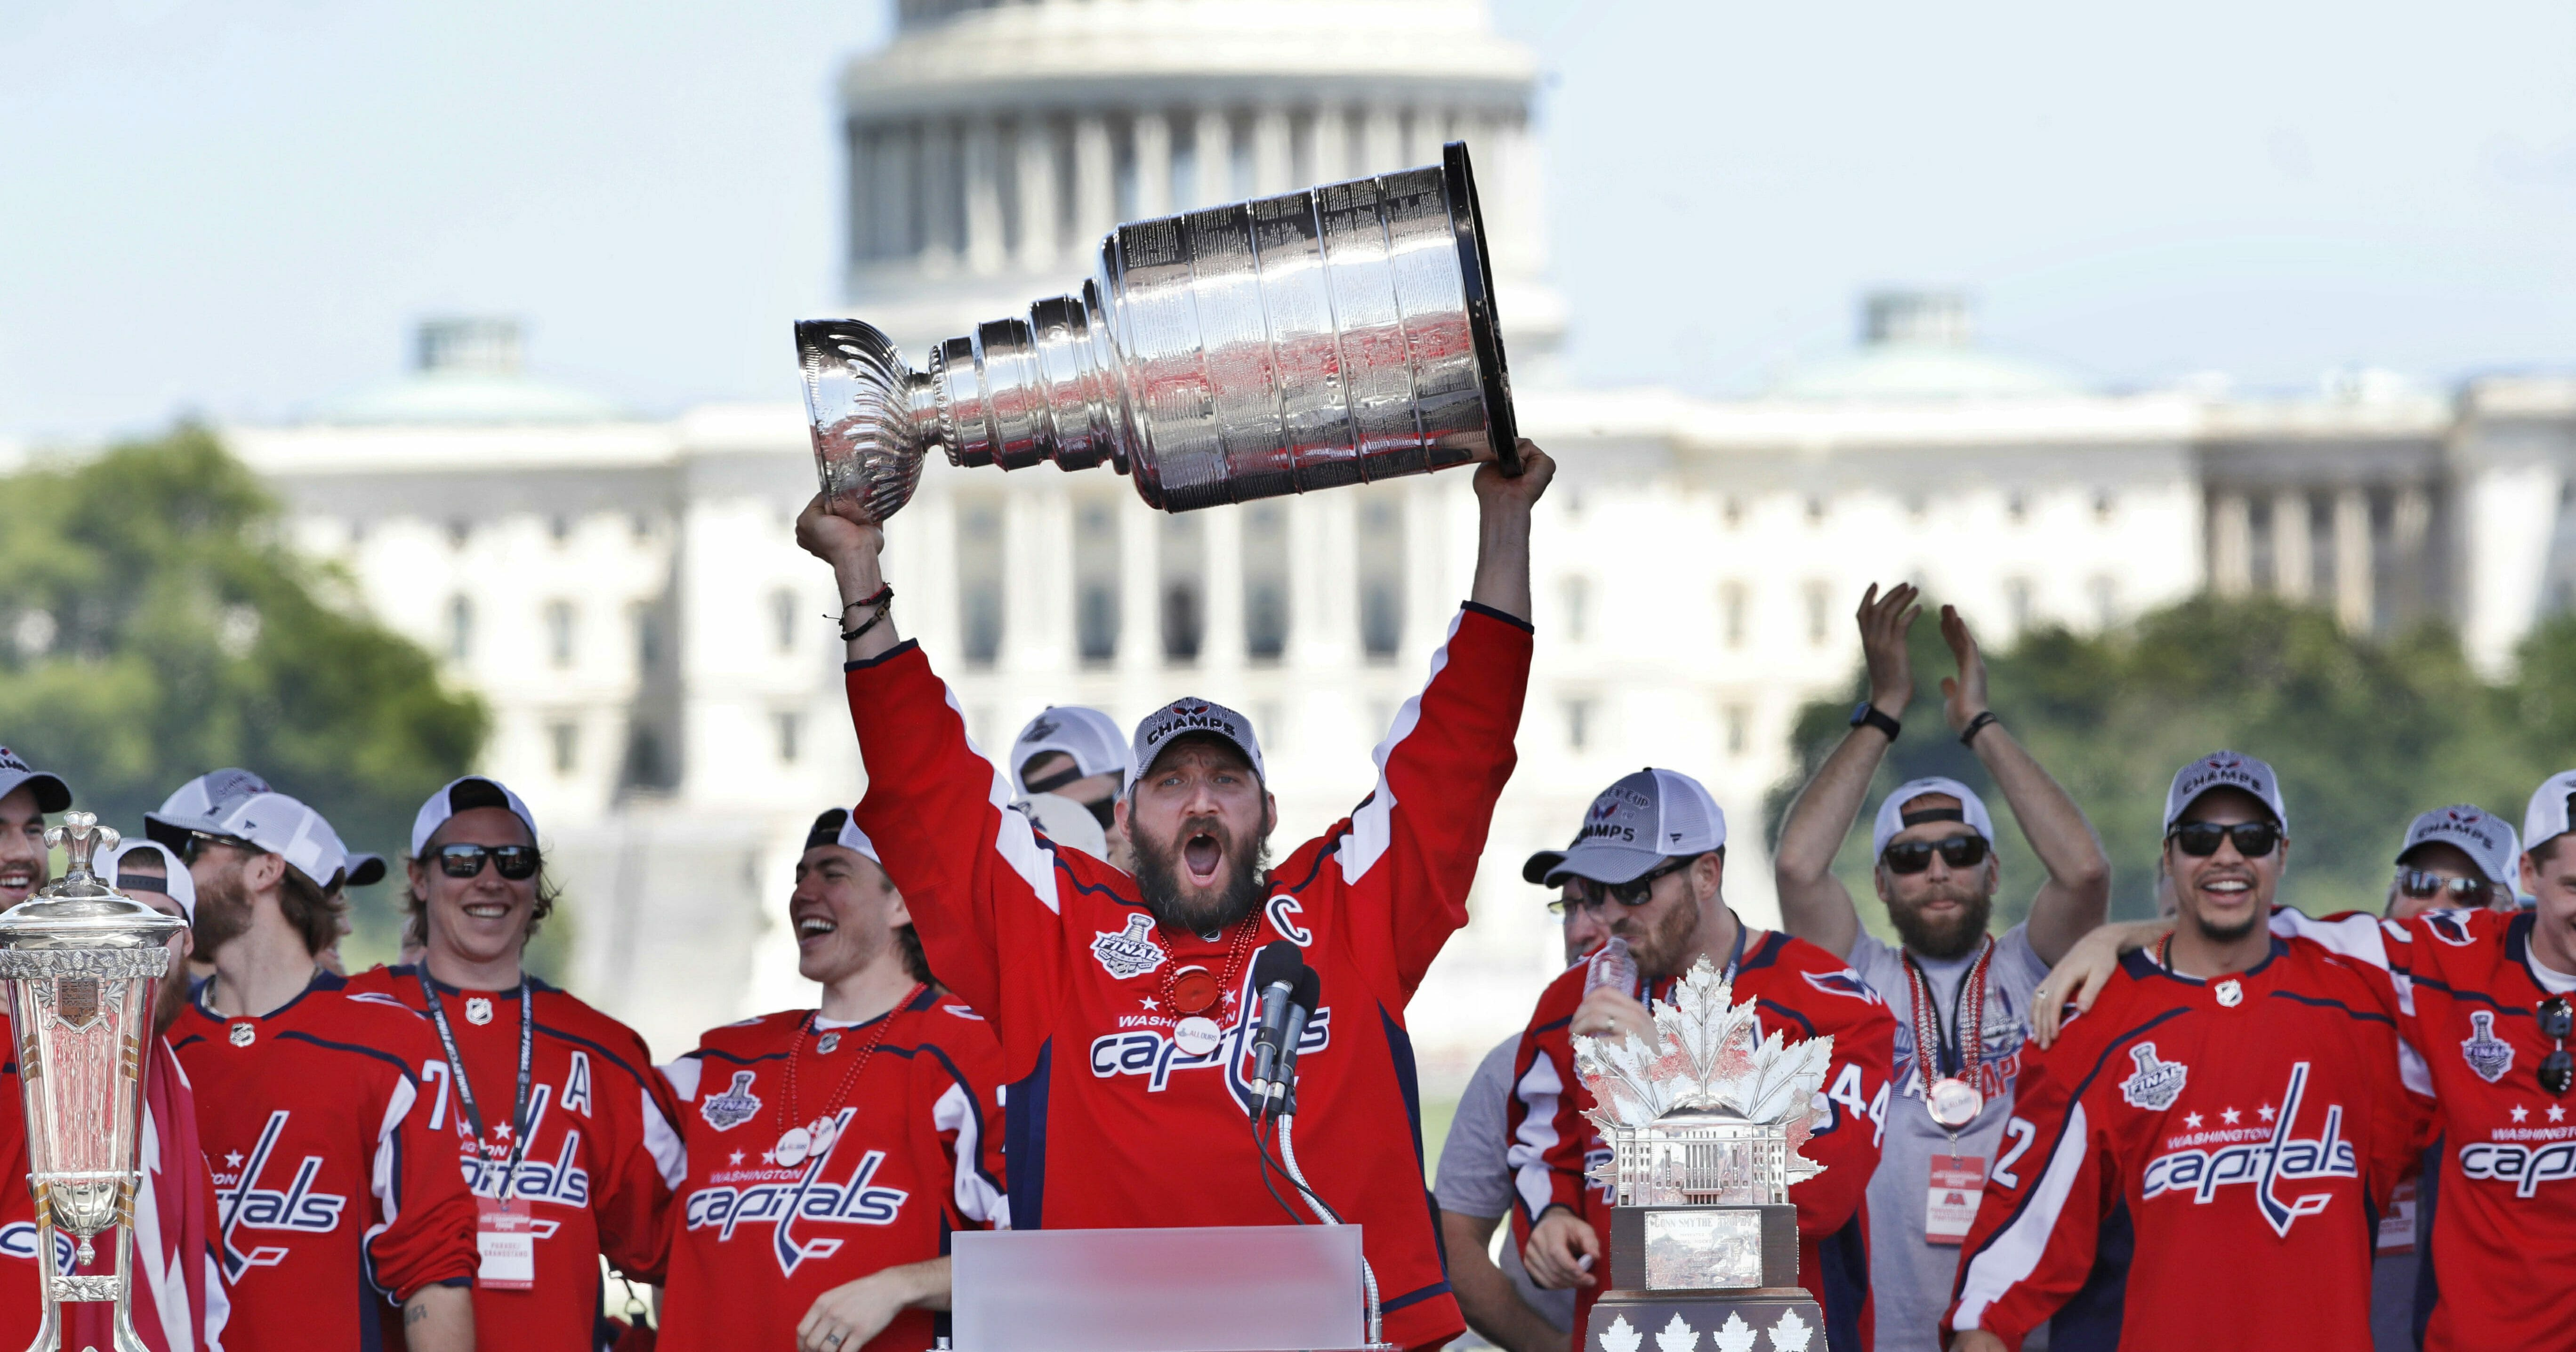 Washington Capitals star Alex Ovechkin holds up the Stanley Cup during the team's championship celebration at the National Mall in Washington on June 12, 2018.